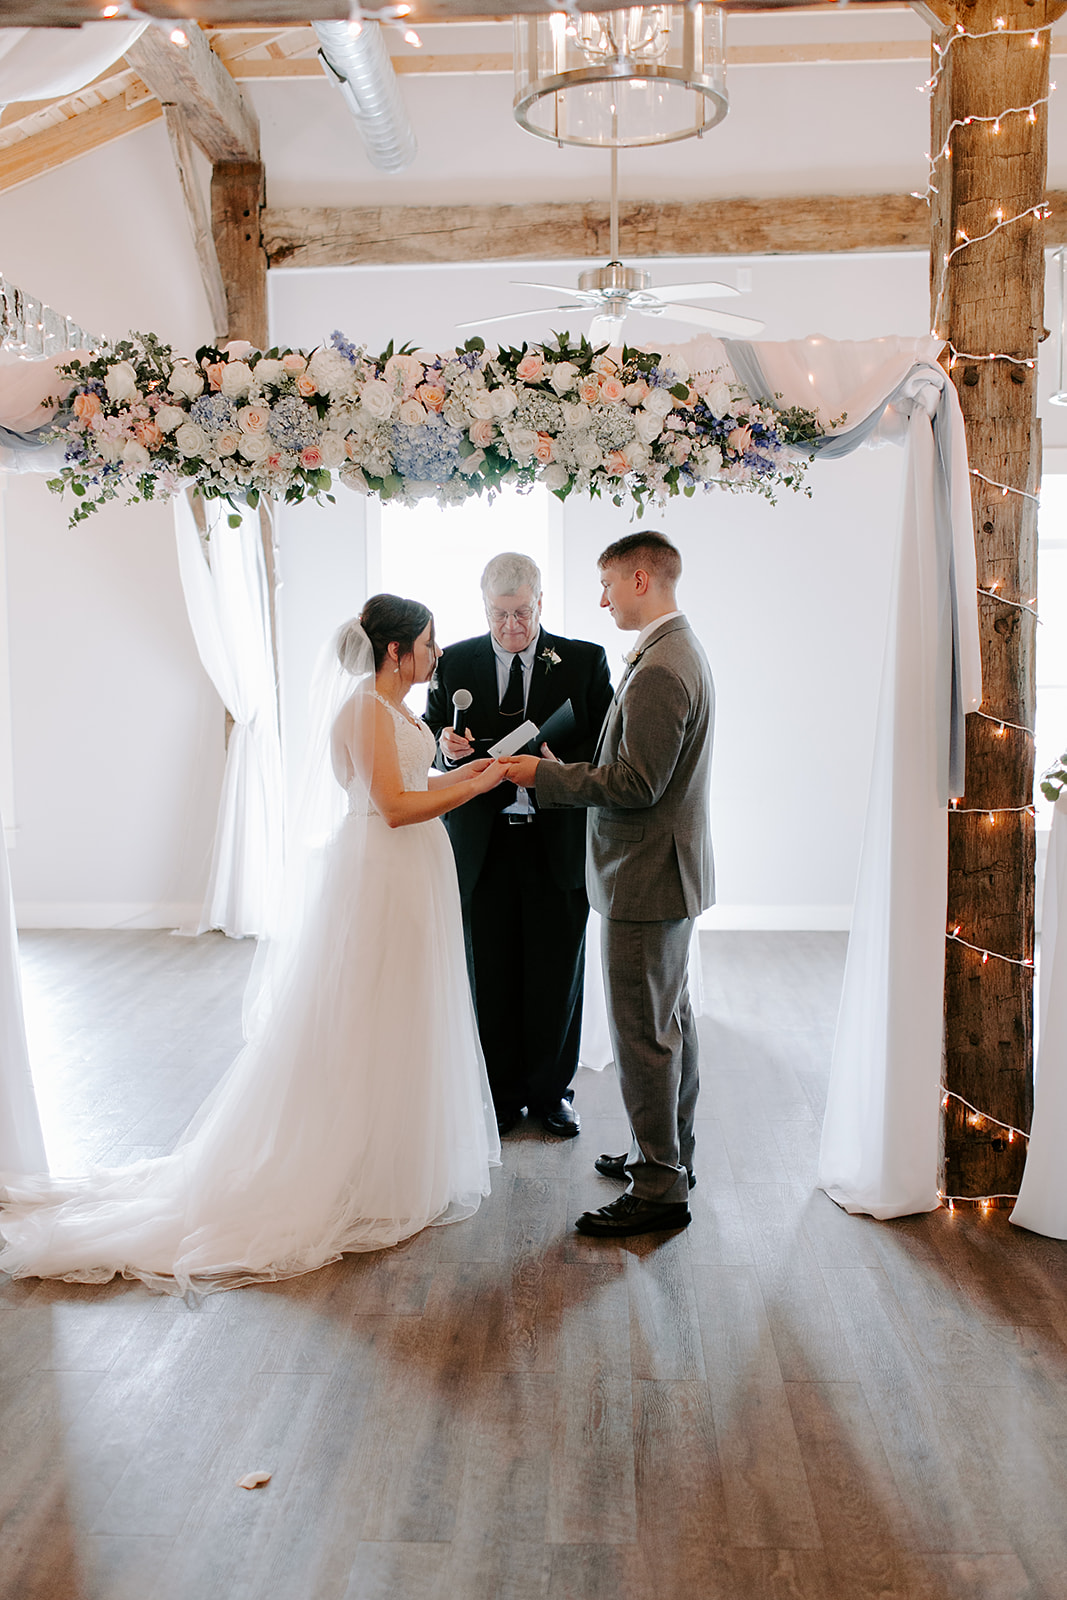 Kendra_and_Mattew_Indiana_Wedding_by_Emily_Wehner-560.jpg